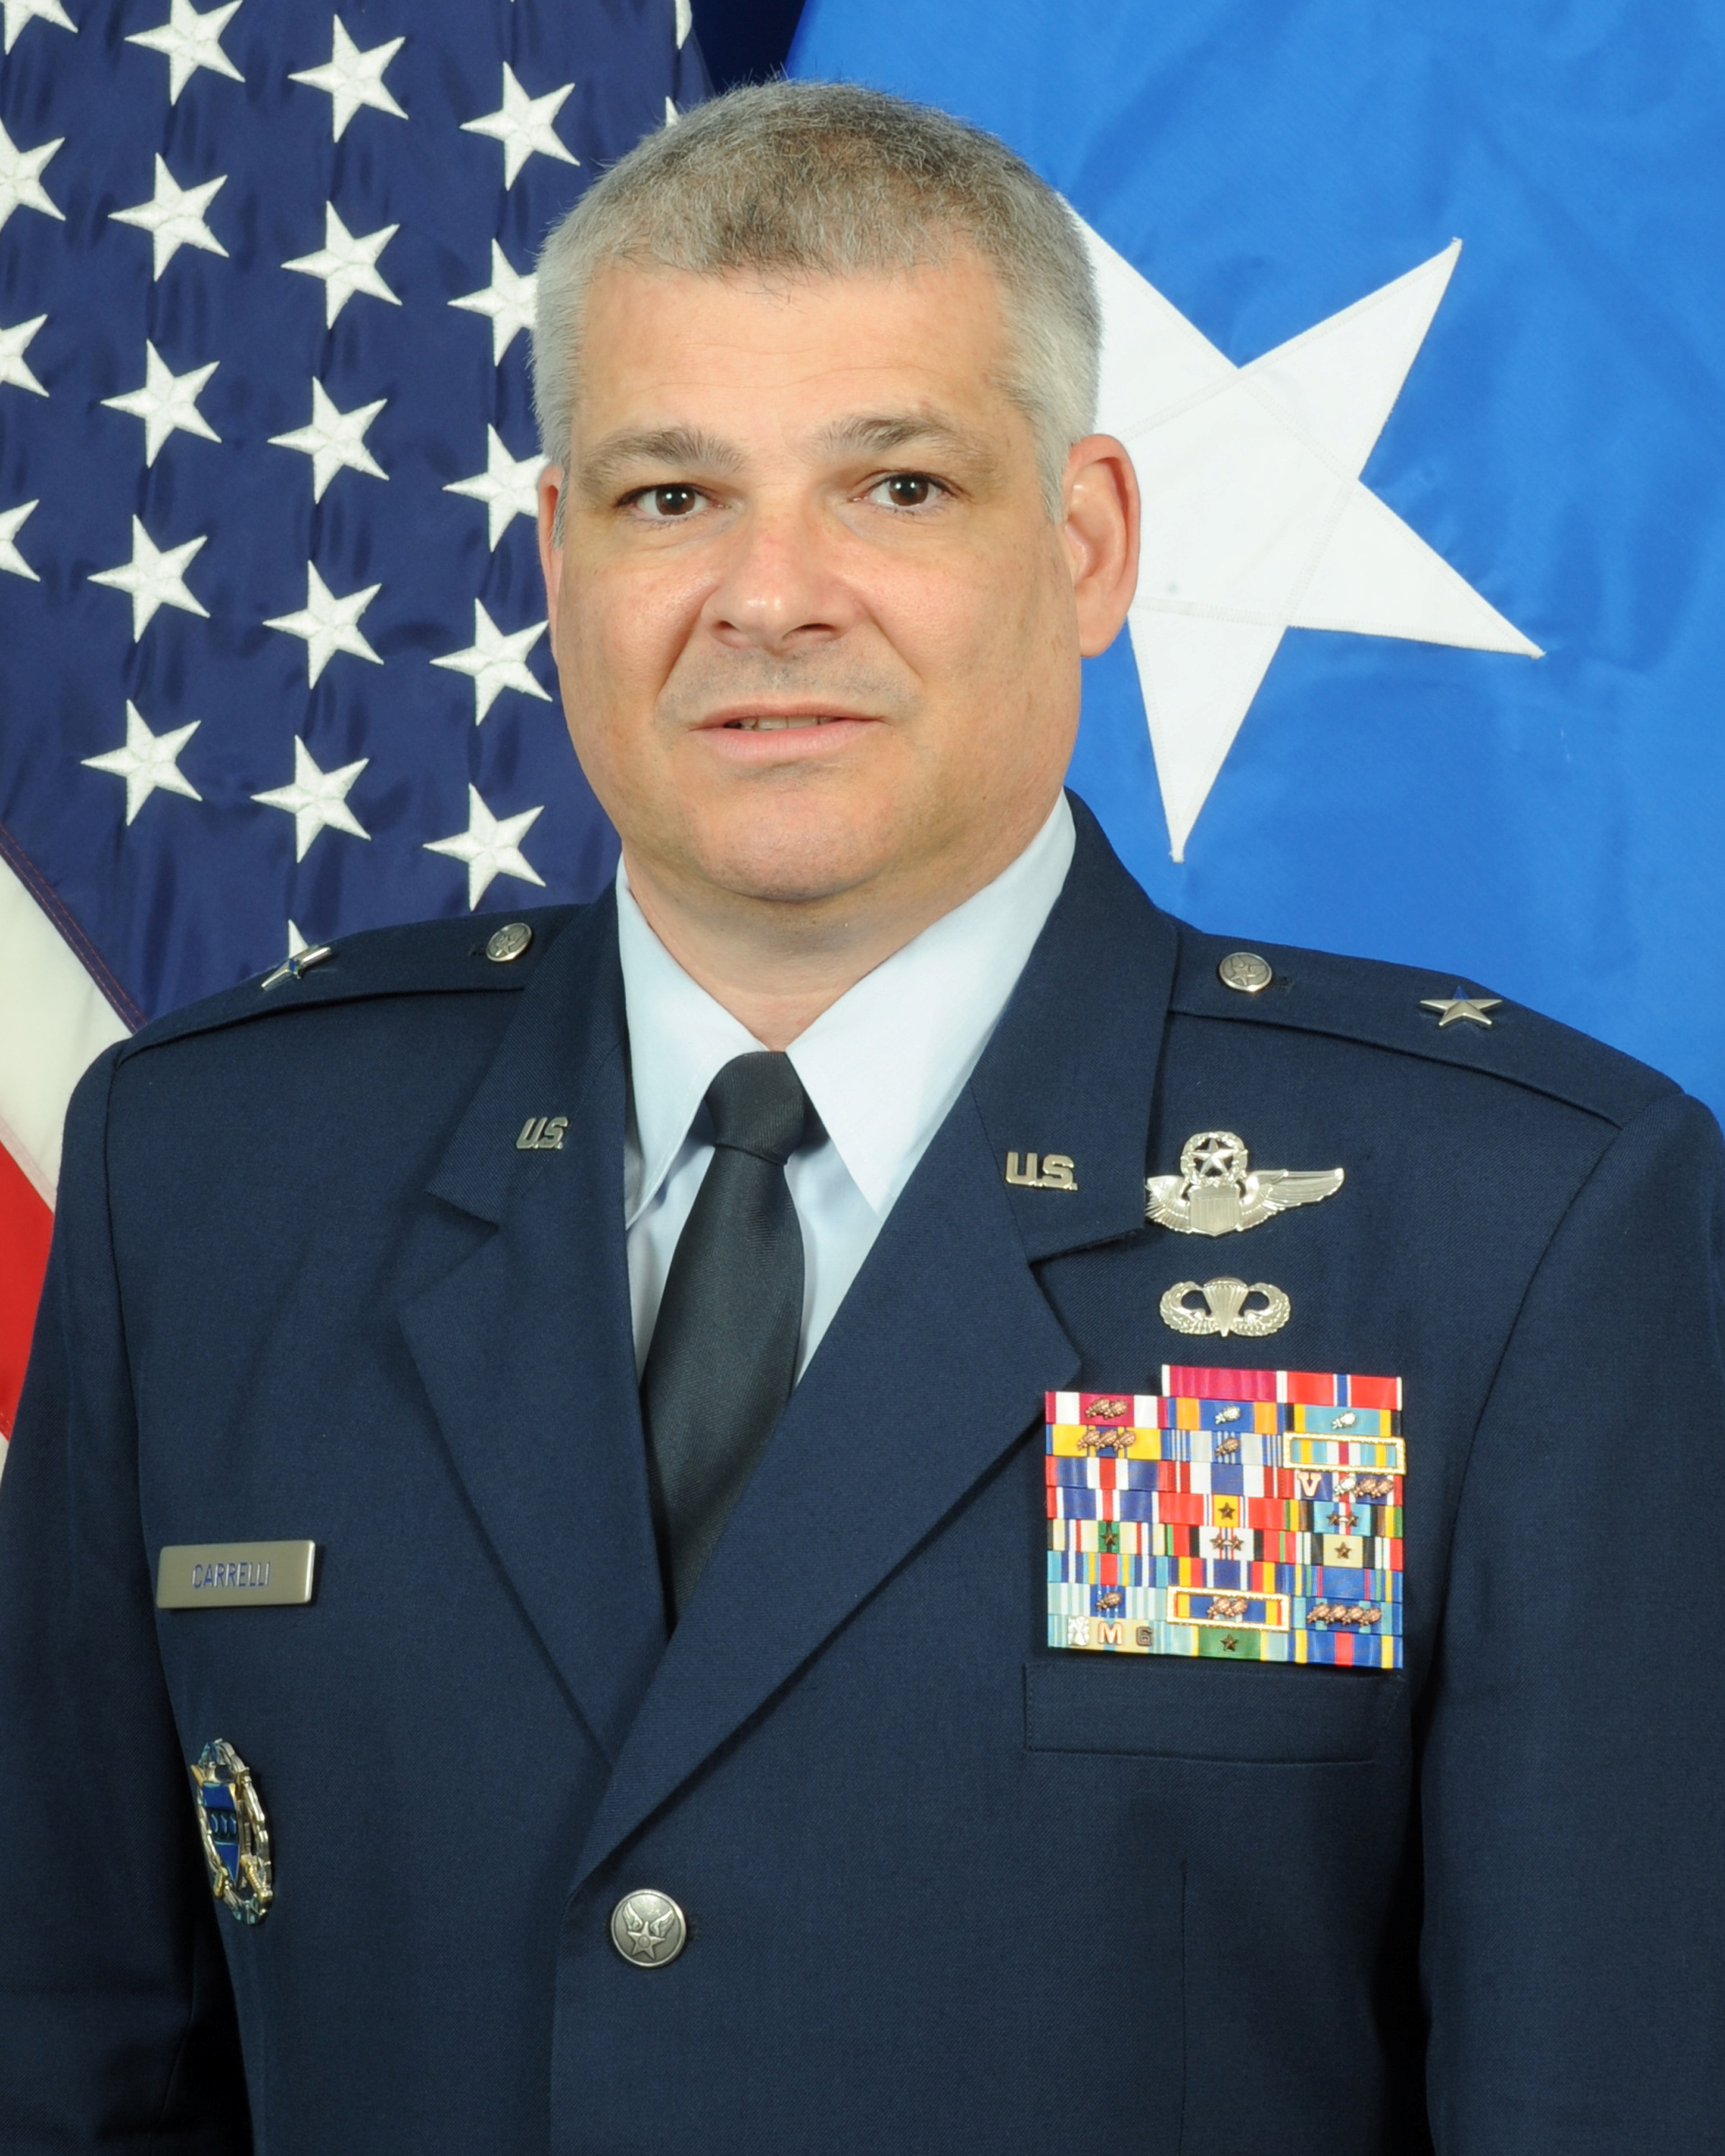 Armed Forces Day Luncheon with Brigadier General Anthony J Carrelli, USAF